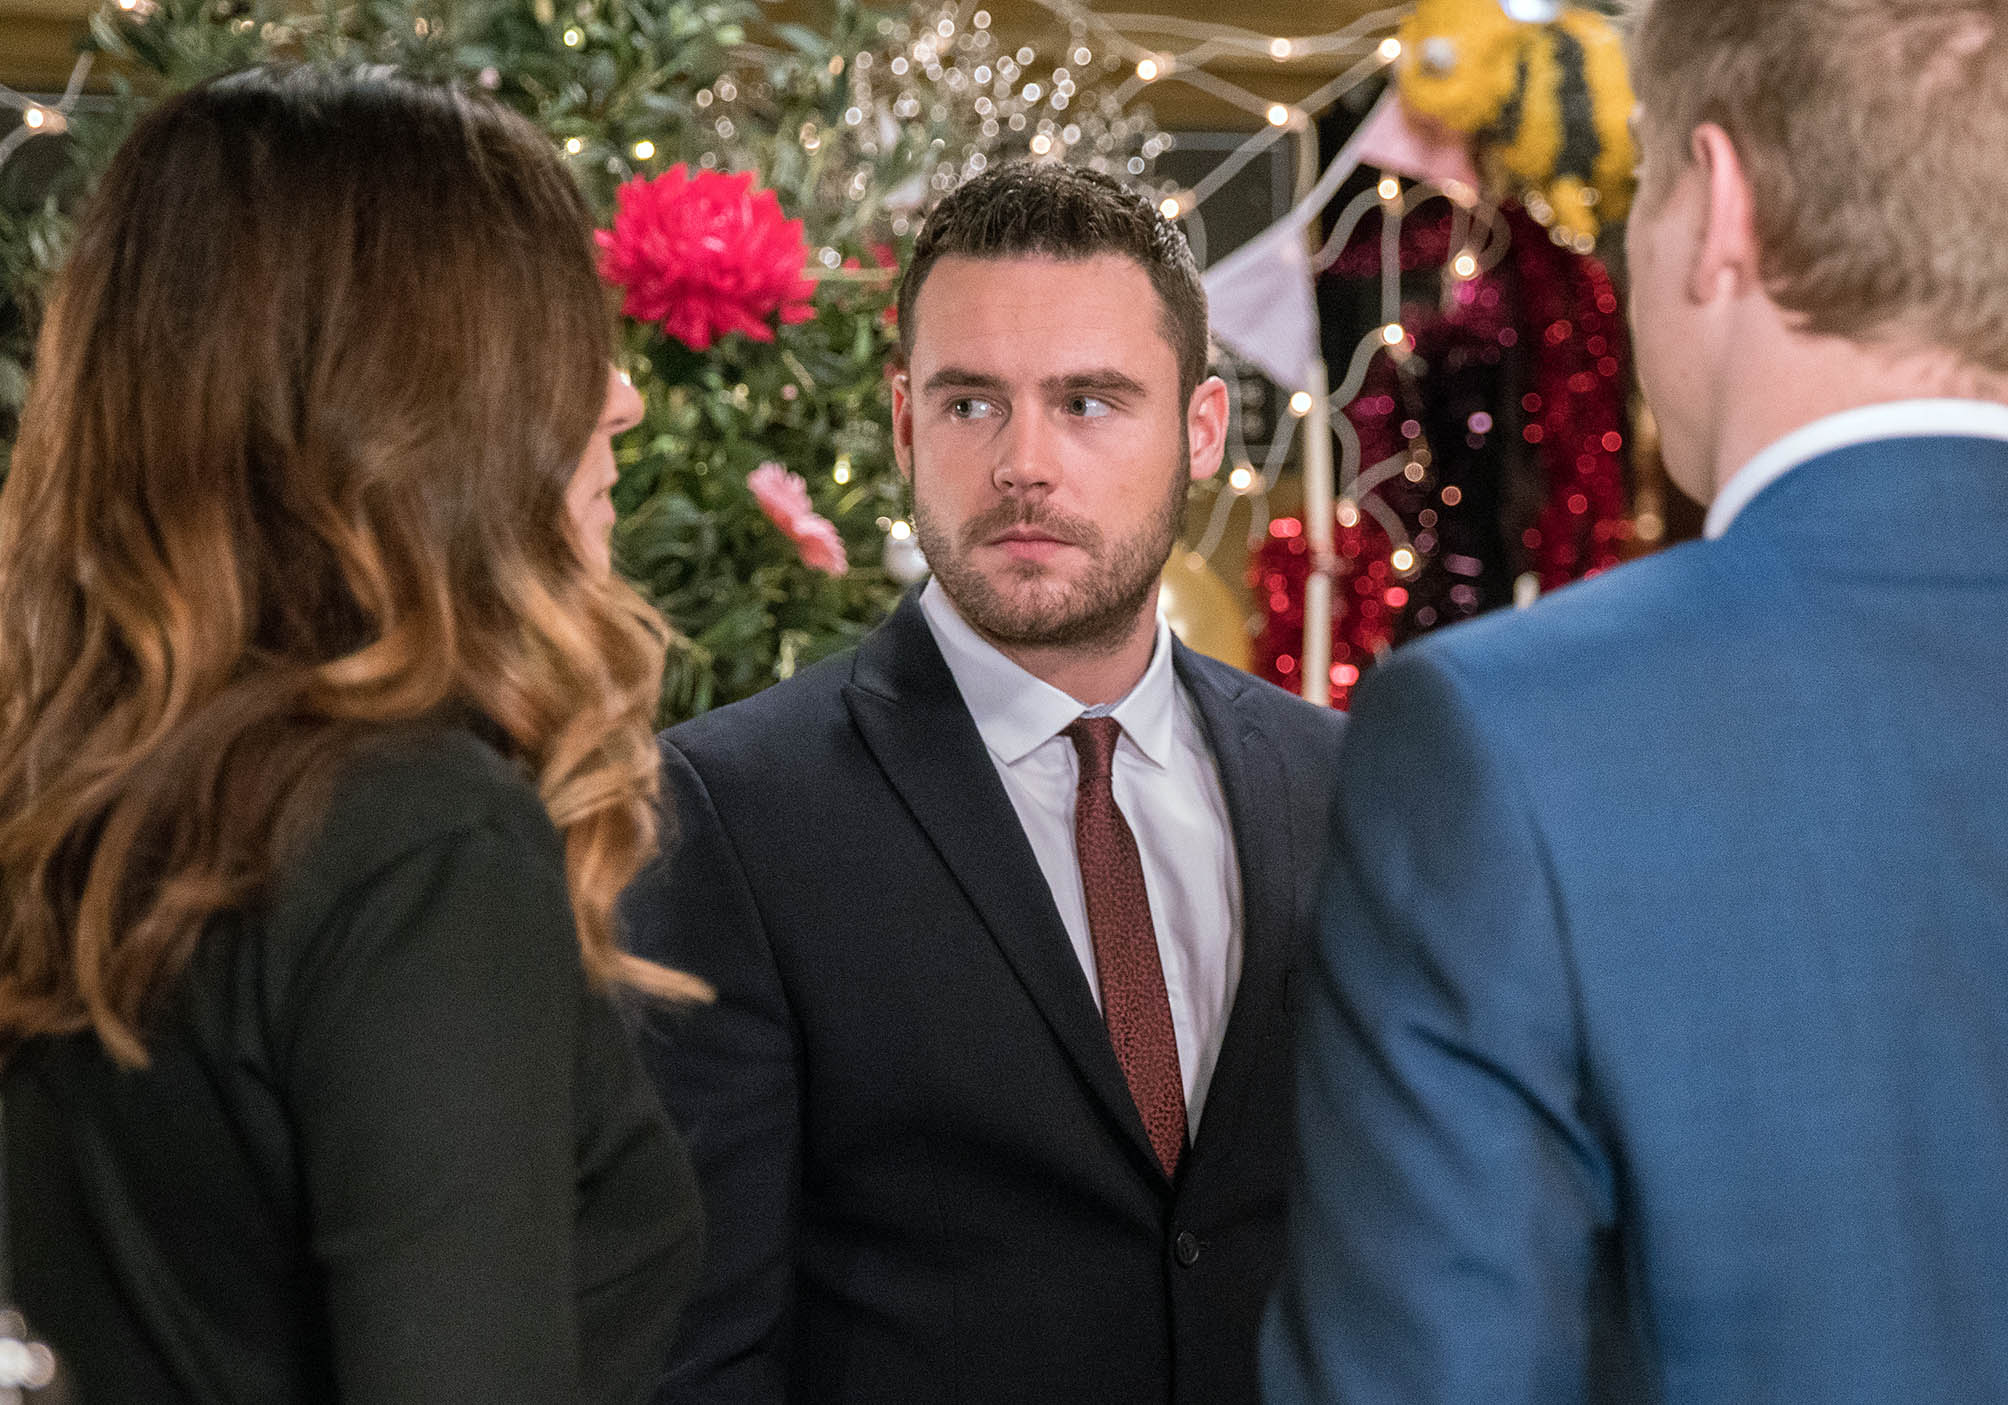 FROM ITV  STRICT EMBARGO -  Print media - No Use Before Tuesday 14th February 2017 Online Media -  No Use Before 0700hrs Tuesday 14th February 2017 emmerdale - Ep 7753 Monday 20th February 2017 The stage is set and Aaron Dingle  in a manner which alters the visual appearance of the person photographed deemed detrimental or inappropriate by ITV plc Picture Desk. This photograph must not be syndicated to any other company, publication or website, or permanently archived, without the express written permission of ITV Plc Picture Desk. Full Terms and conditions are available on the website www.itvpictures.com